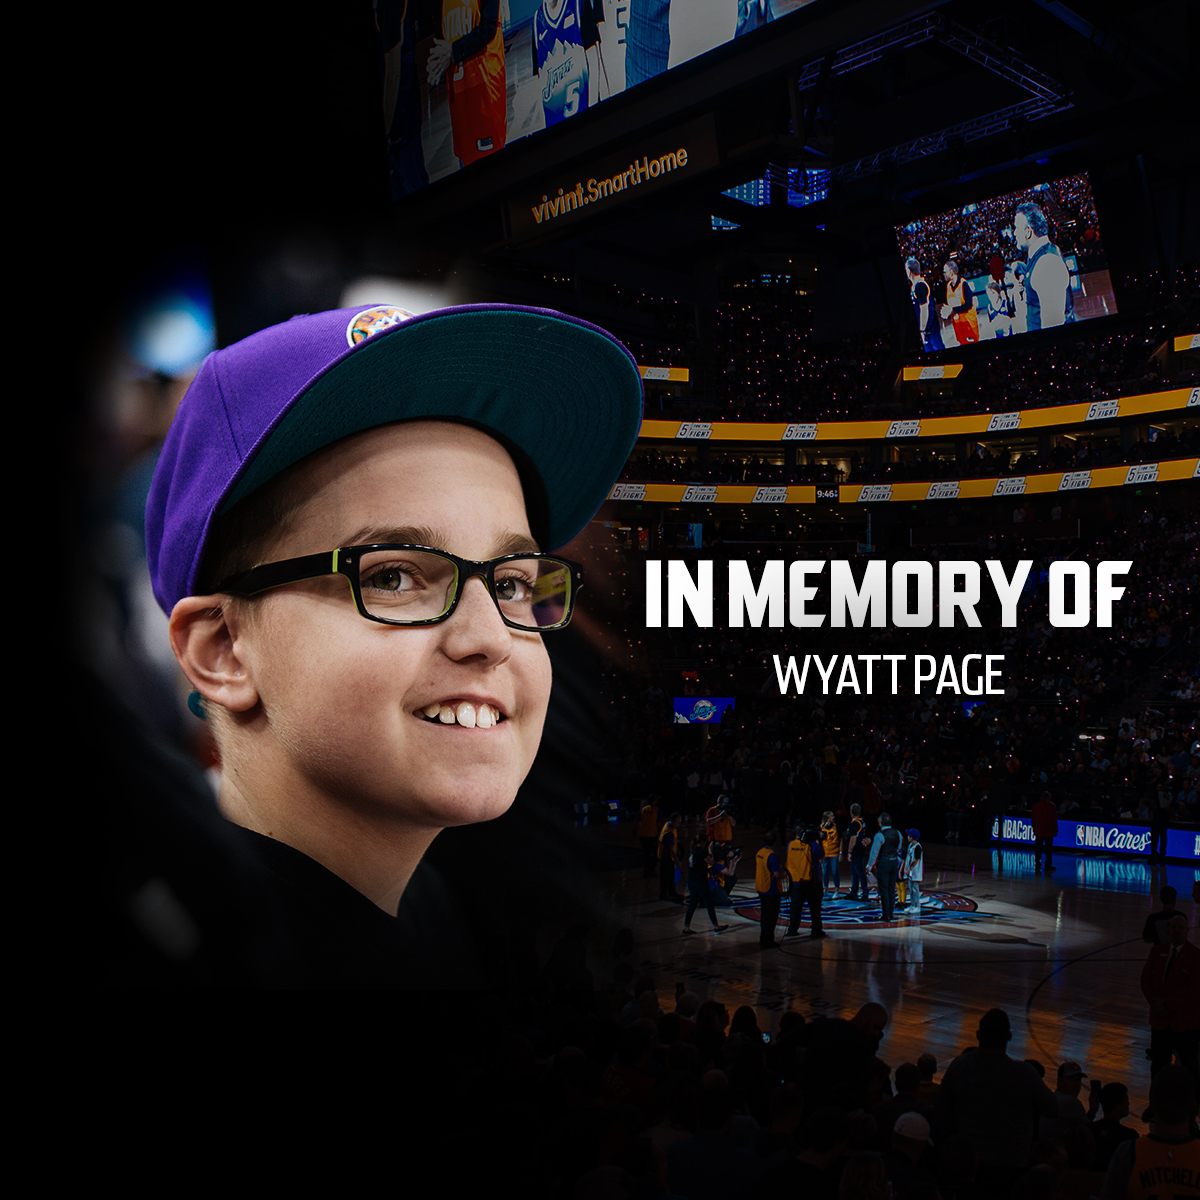 """We express our deepest condolences to the family of Wyatt Page, who passed away this morning after a 2-year battle with brain cancer. Earlier this season, he signed on with the team as one of our """"5 For The Fight"""" fighters. We're honored to have Wyatt as a Jazzman forever."""